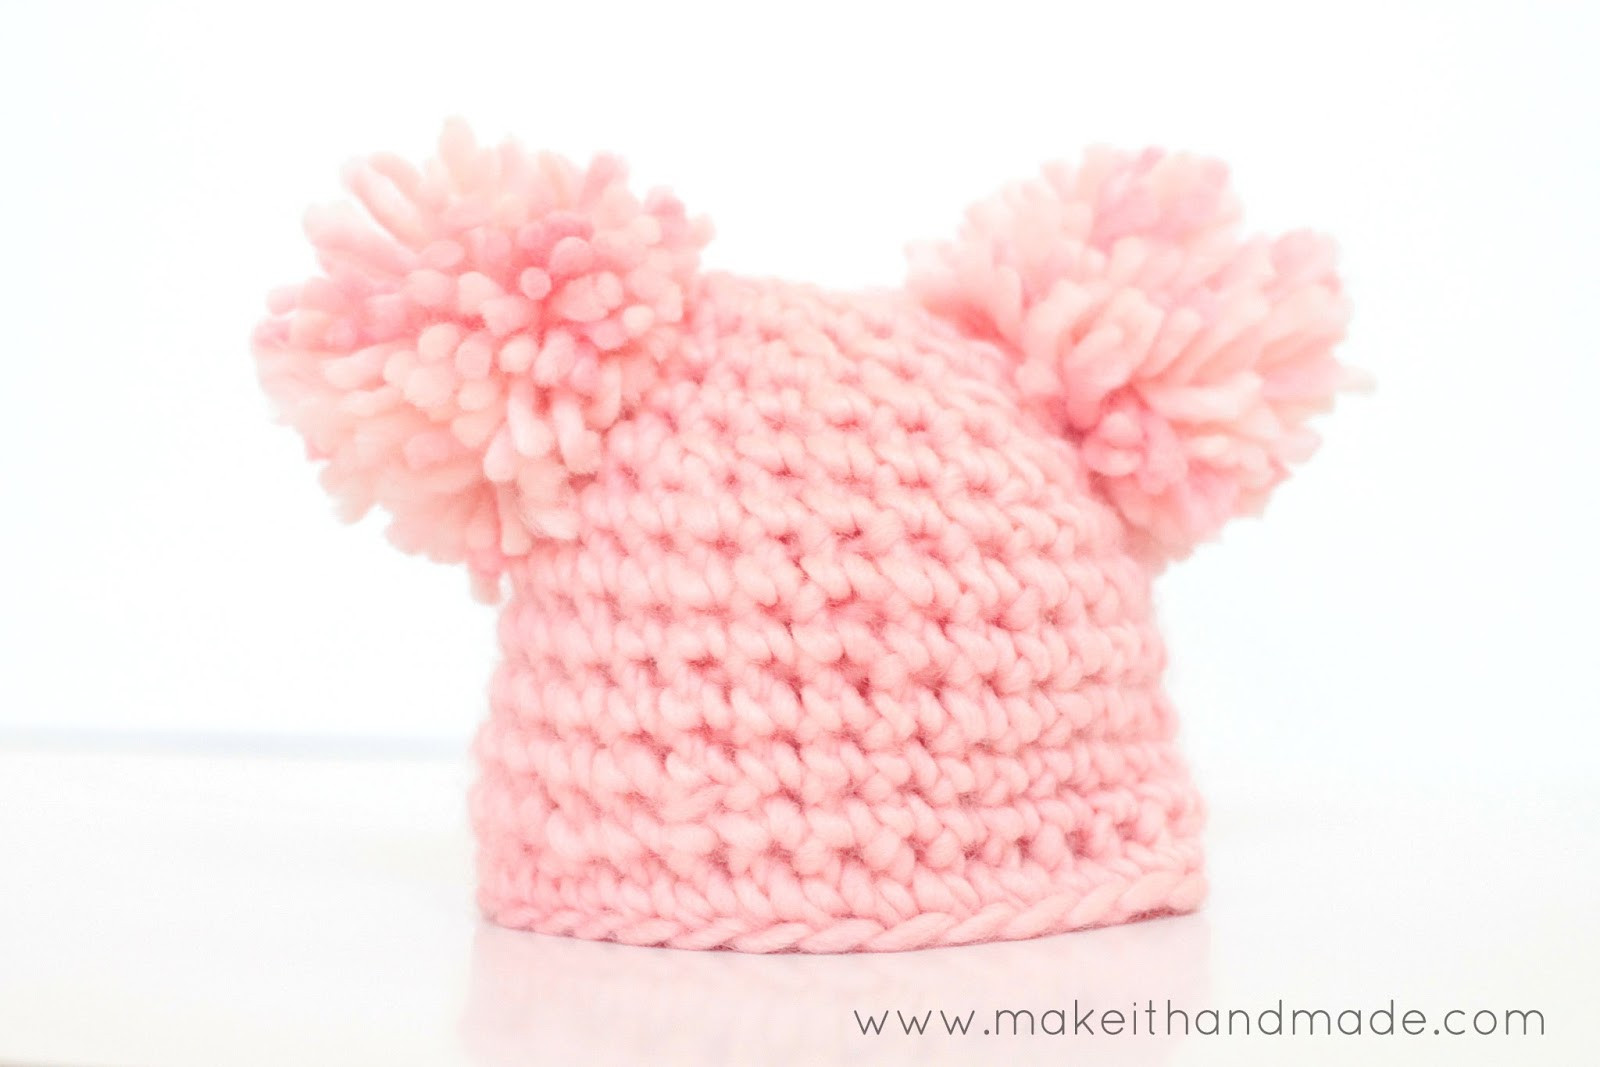 Newborn Baby Hat Crochet Pattern Awesome Make It Handmade the Bubble Gum Newborn Hat Free Pattern Of Superb 44 Pictures Newborn Baby Hat Crochet Pattern